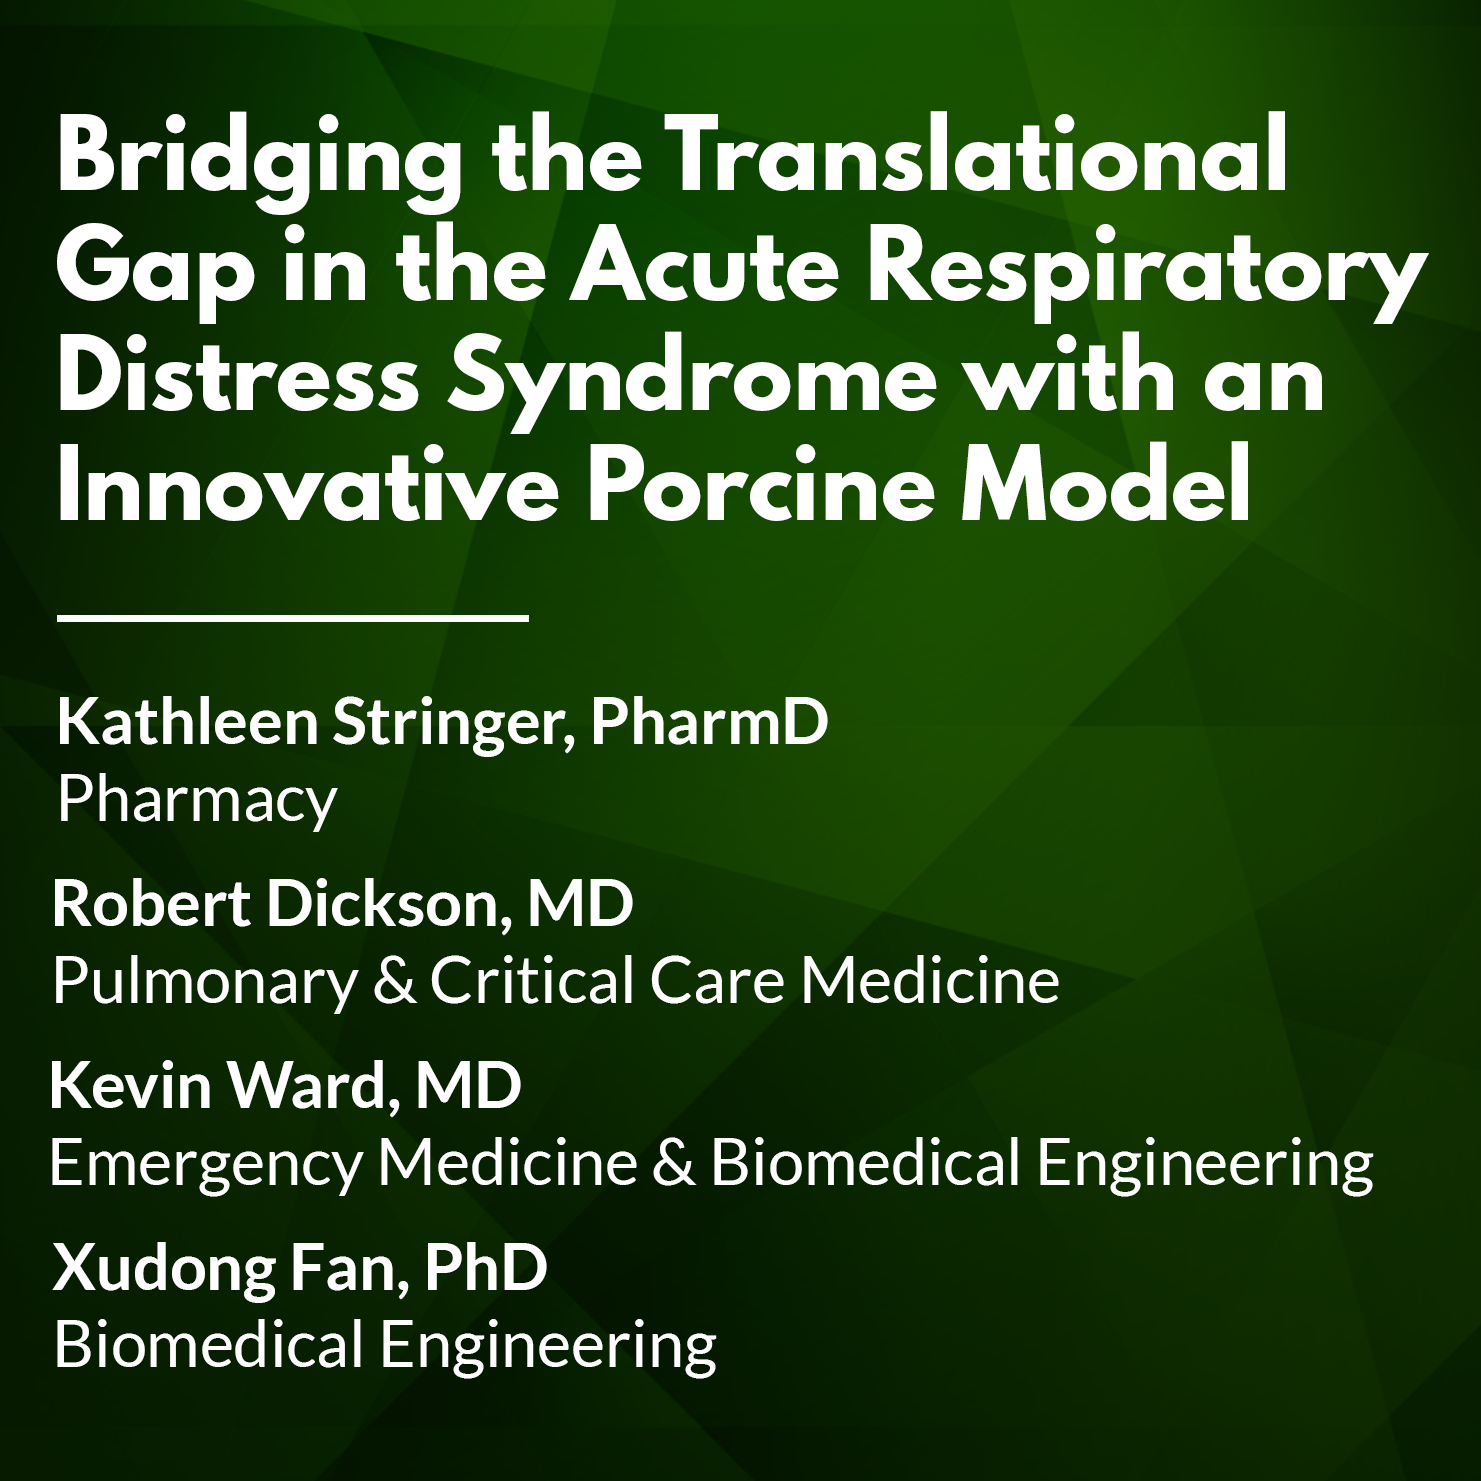 Bridging the Translational Gap in the Acute Respiratory Distress Syndrome with an Innovative Porcine Model.png